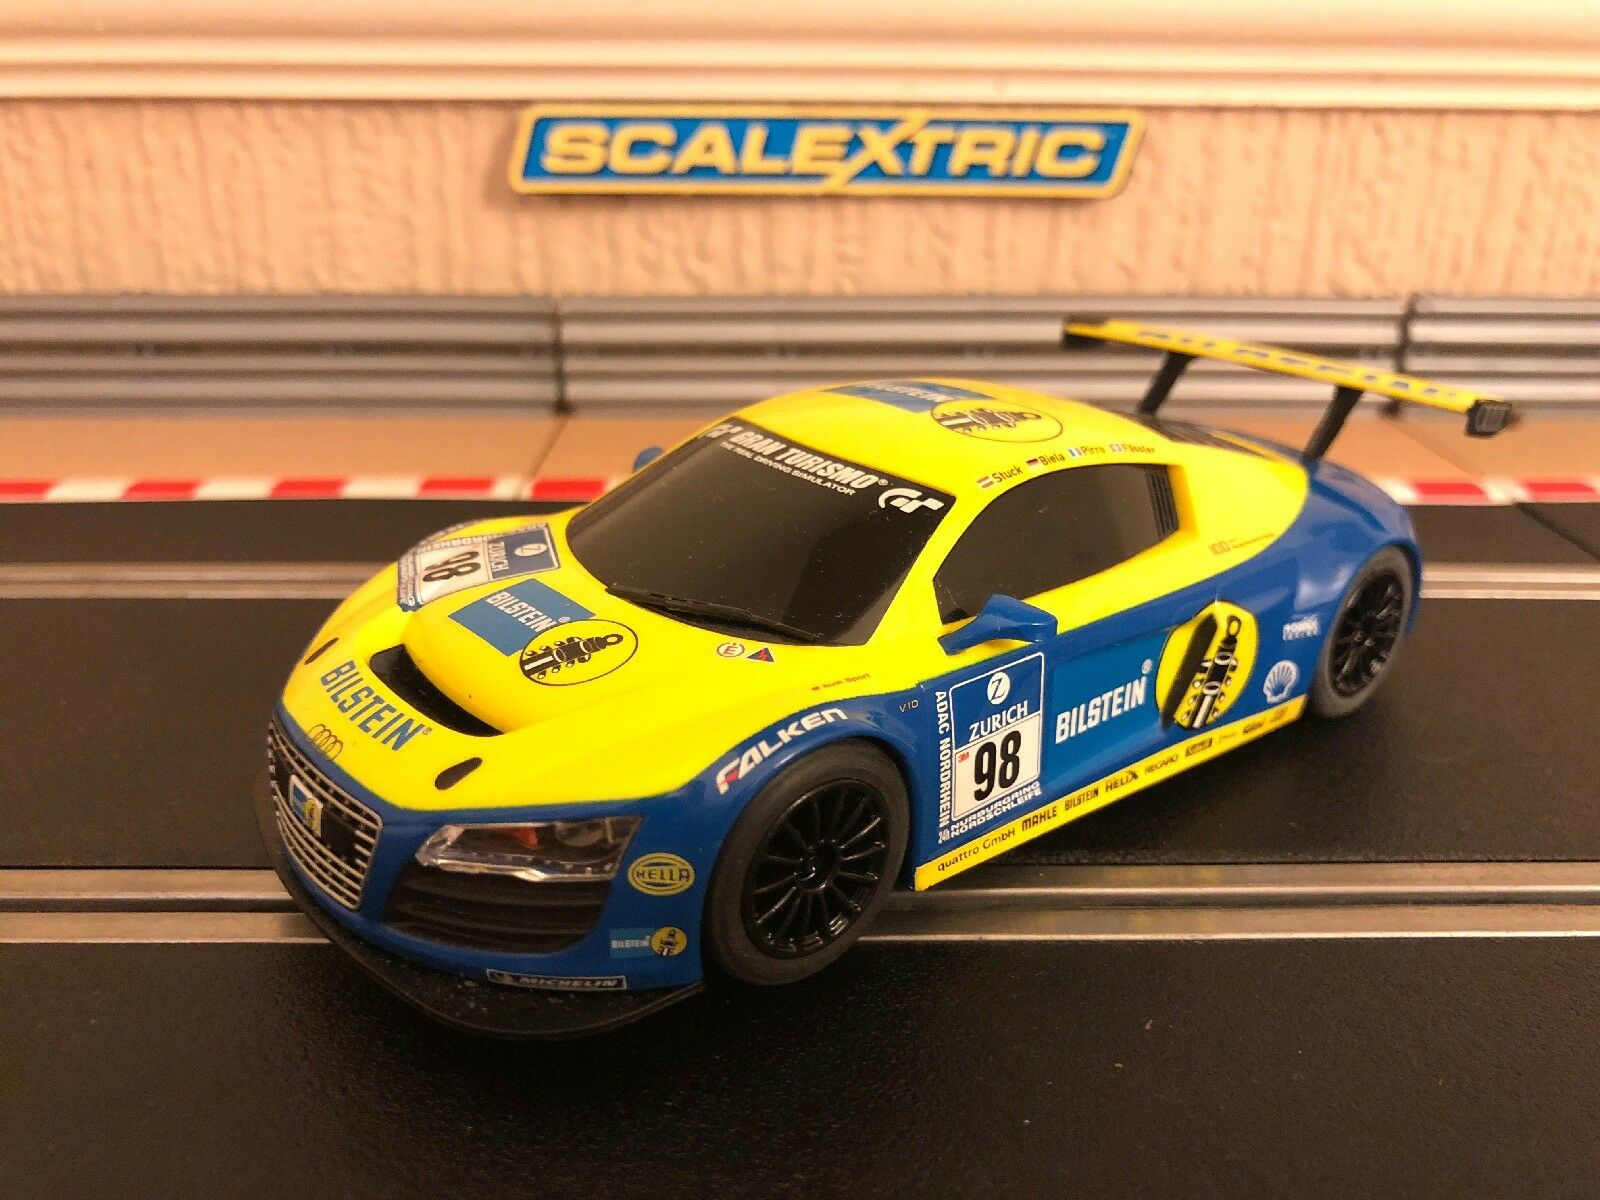 Scalextric Audi R8 LMS GT3 'Bilstein' No98 C3045 Mint Condition